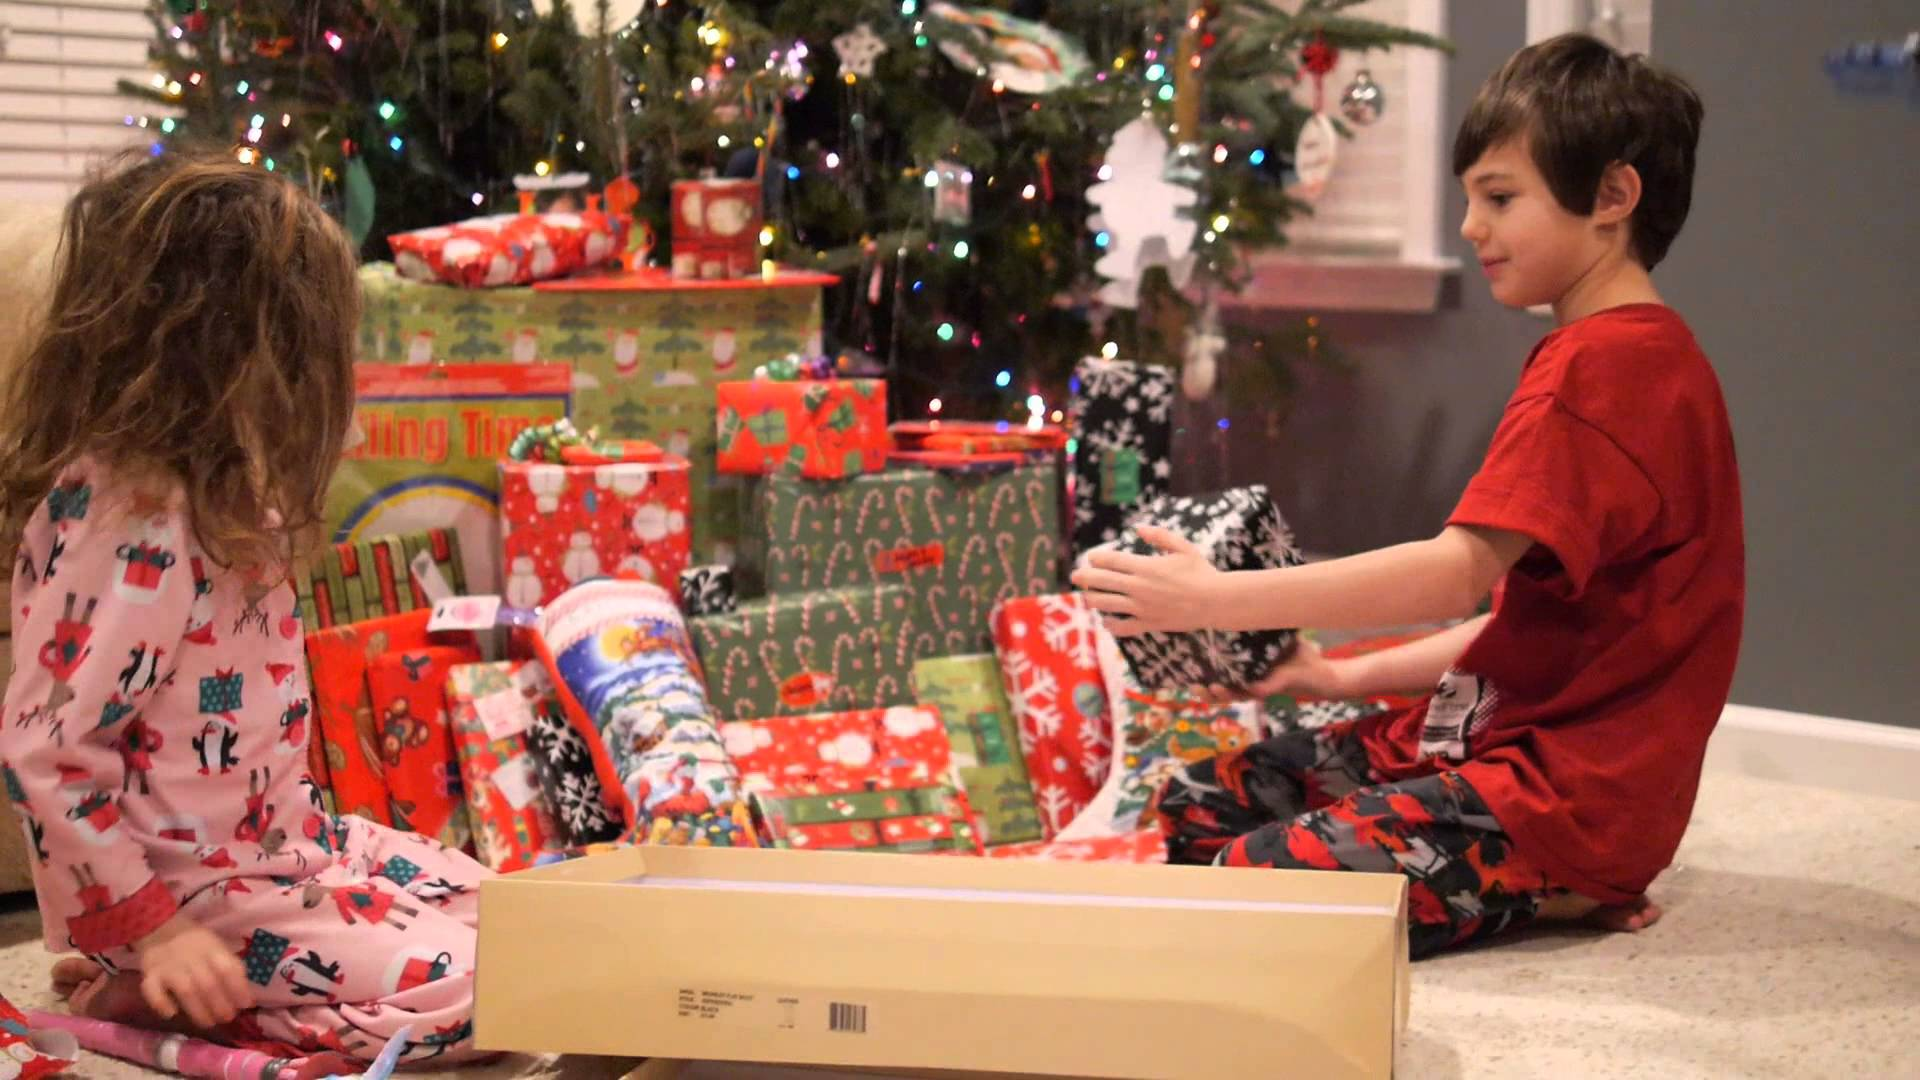 pauls kids christmas video - HD 1920×1080